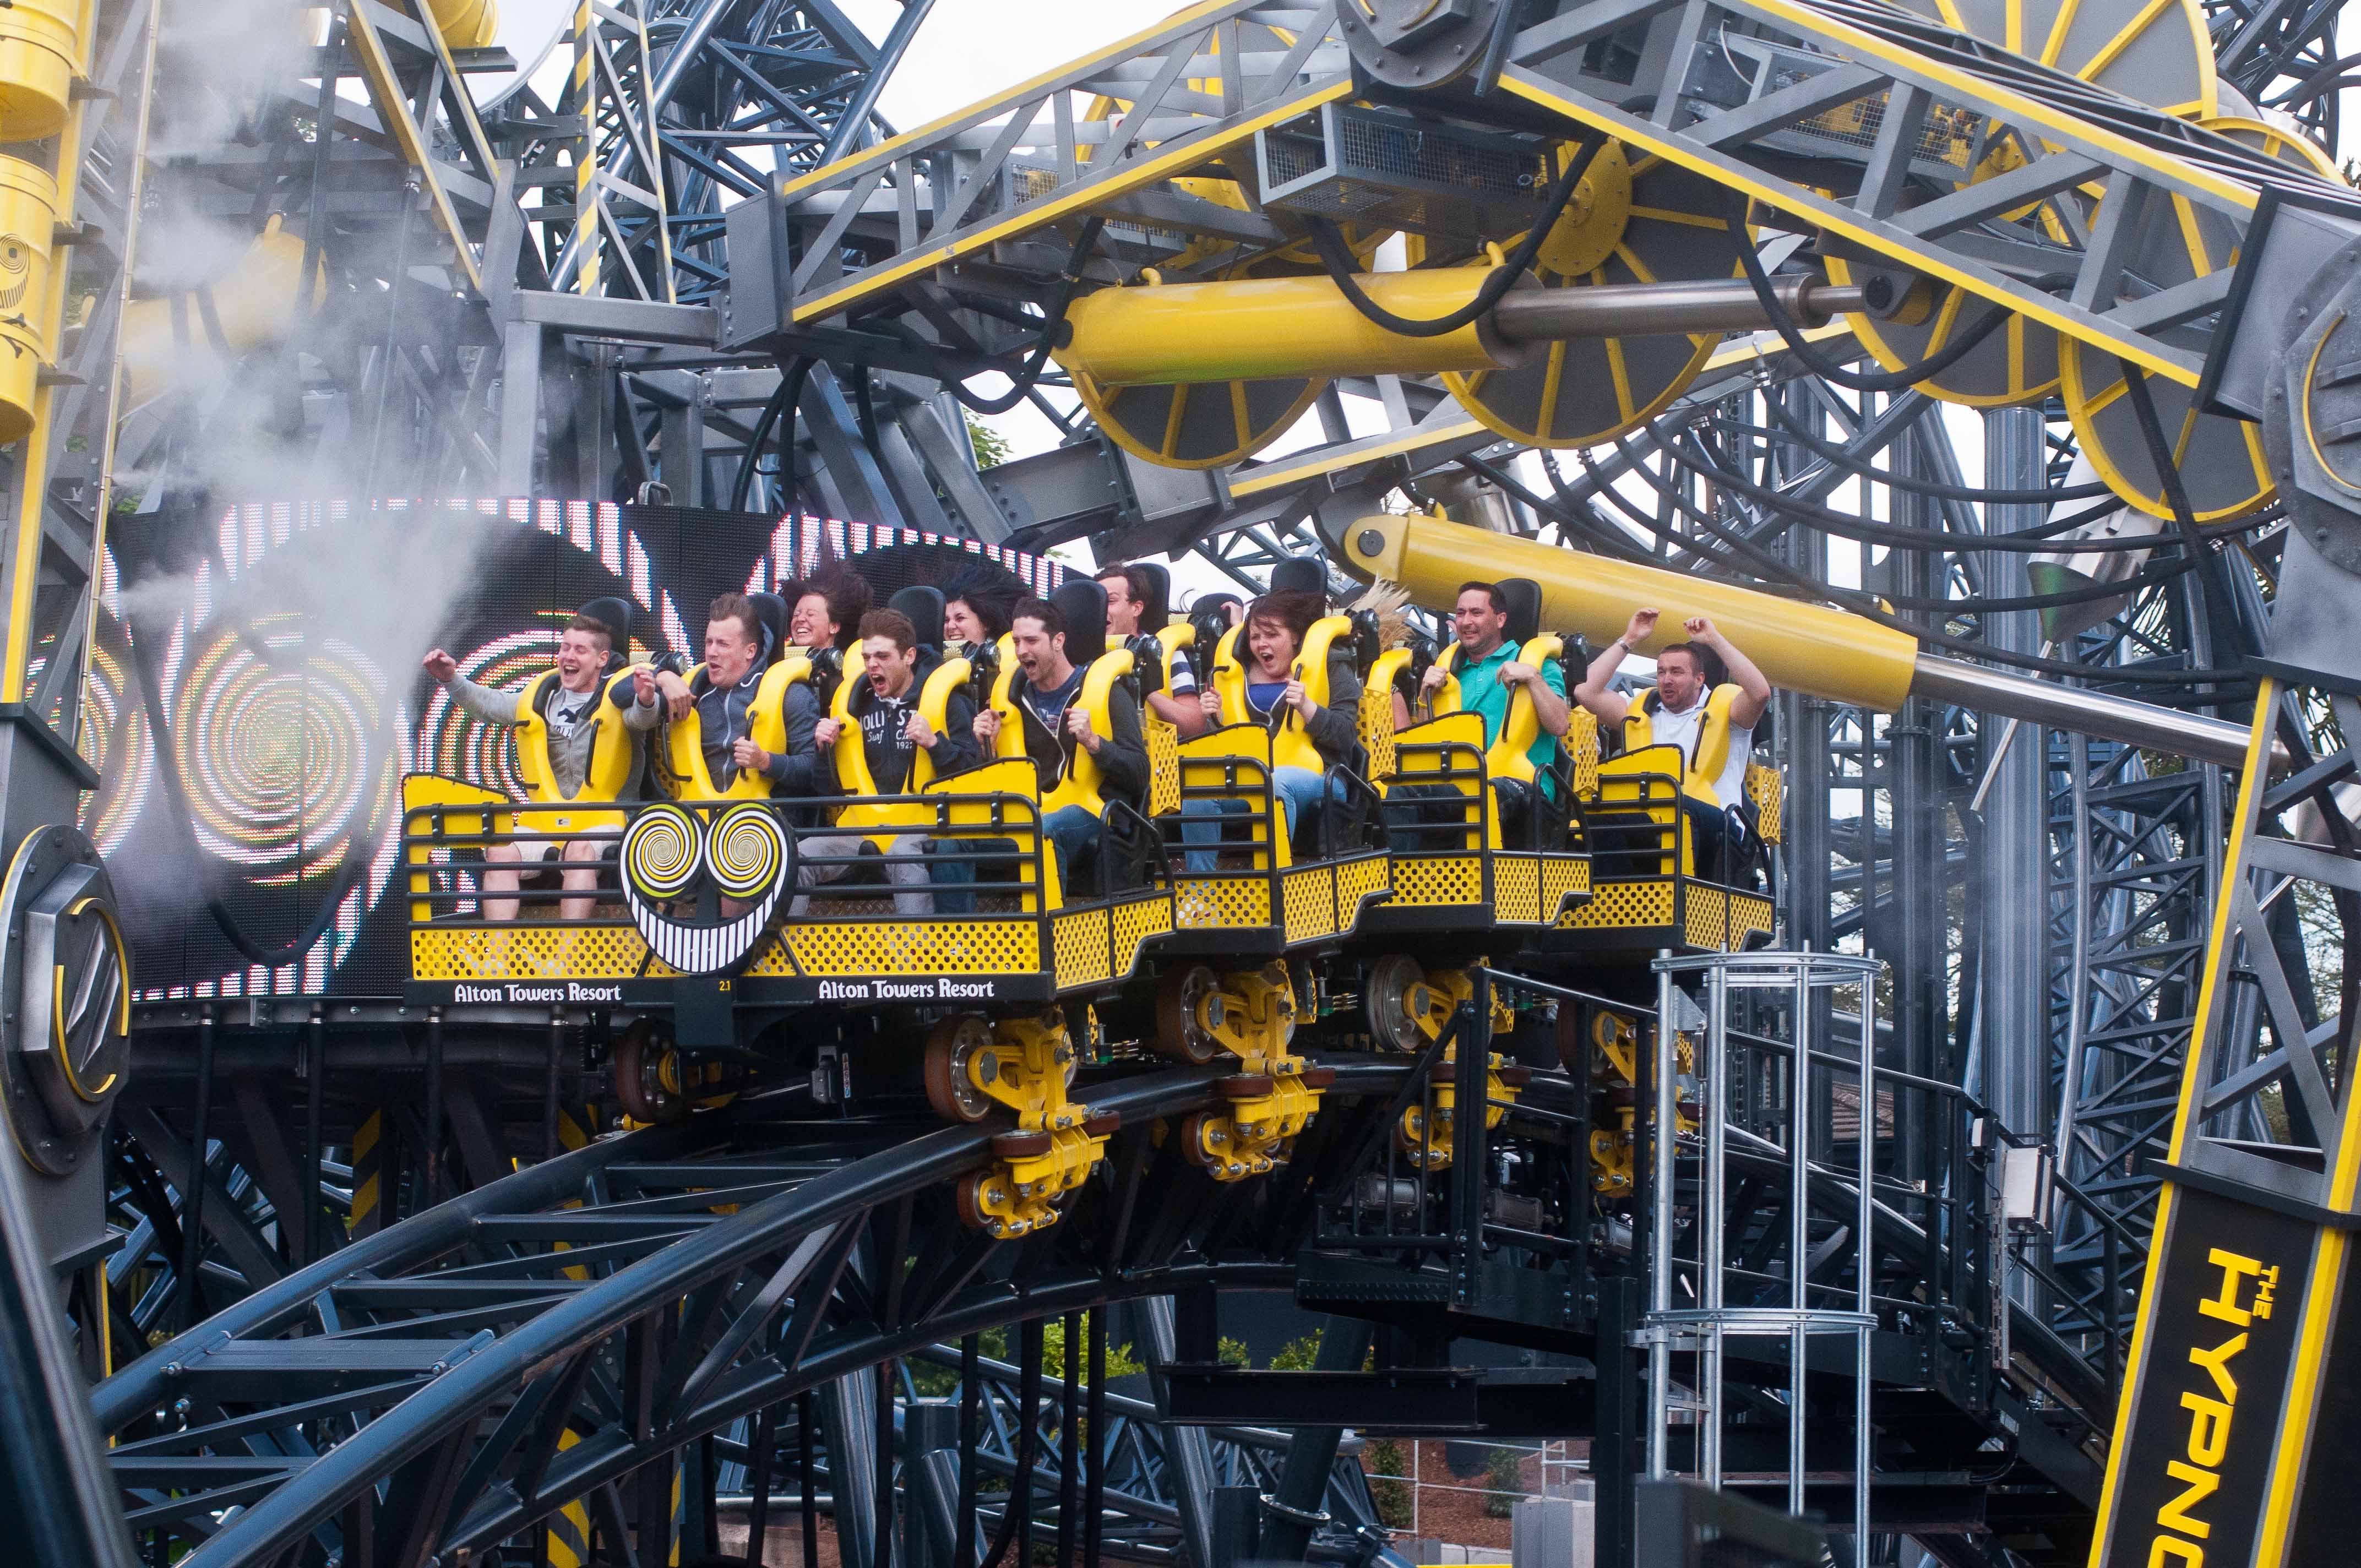 The Smiler at Alton Towers Resort